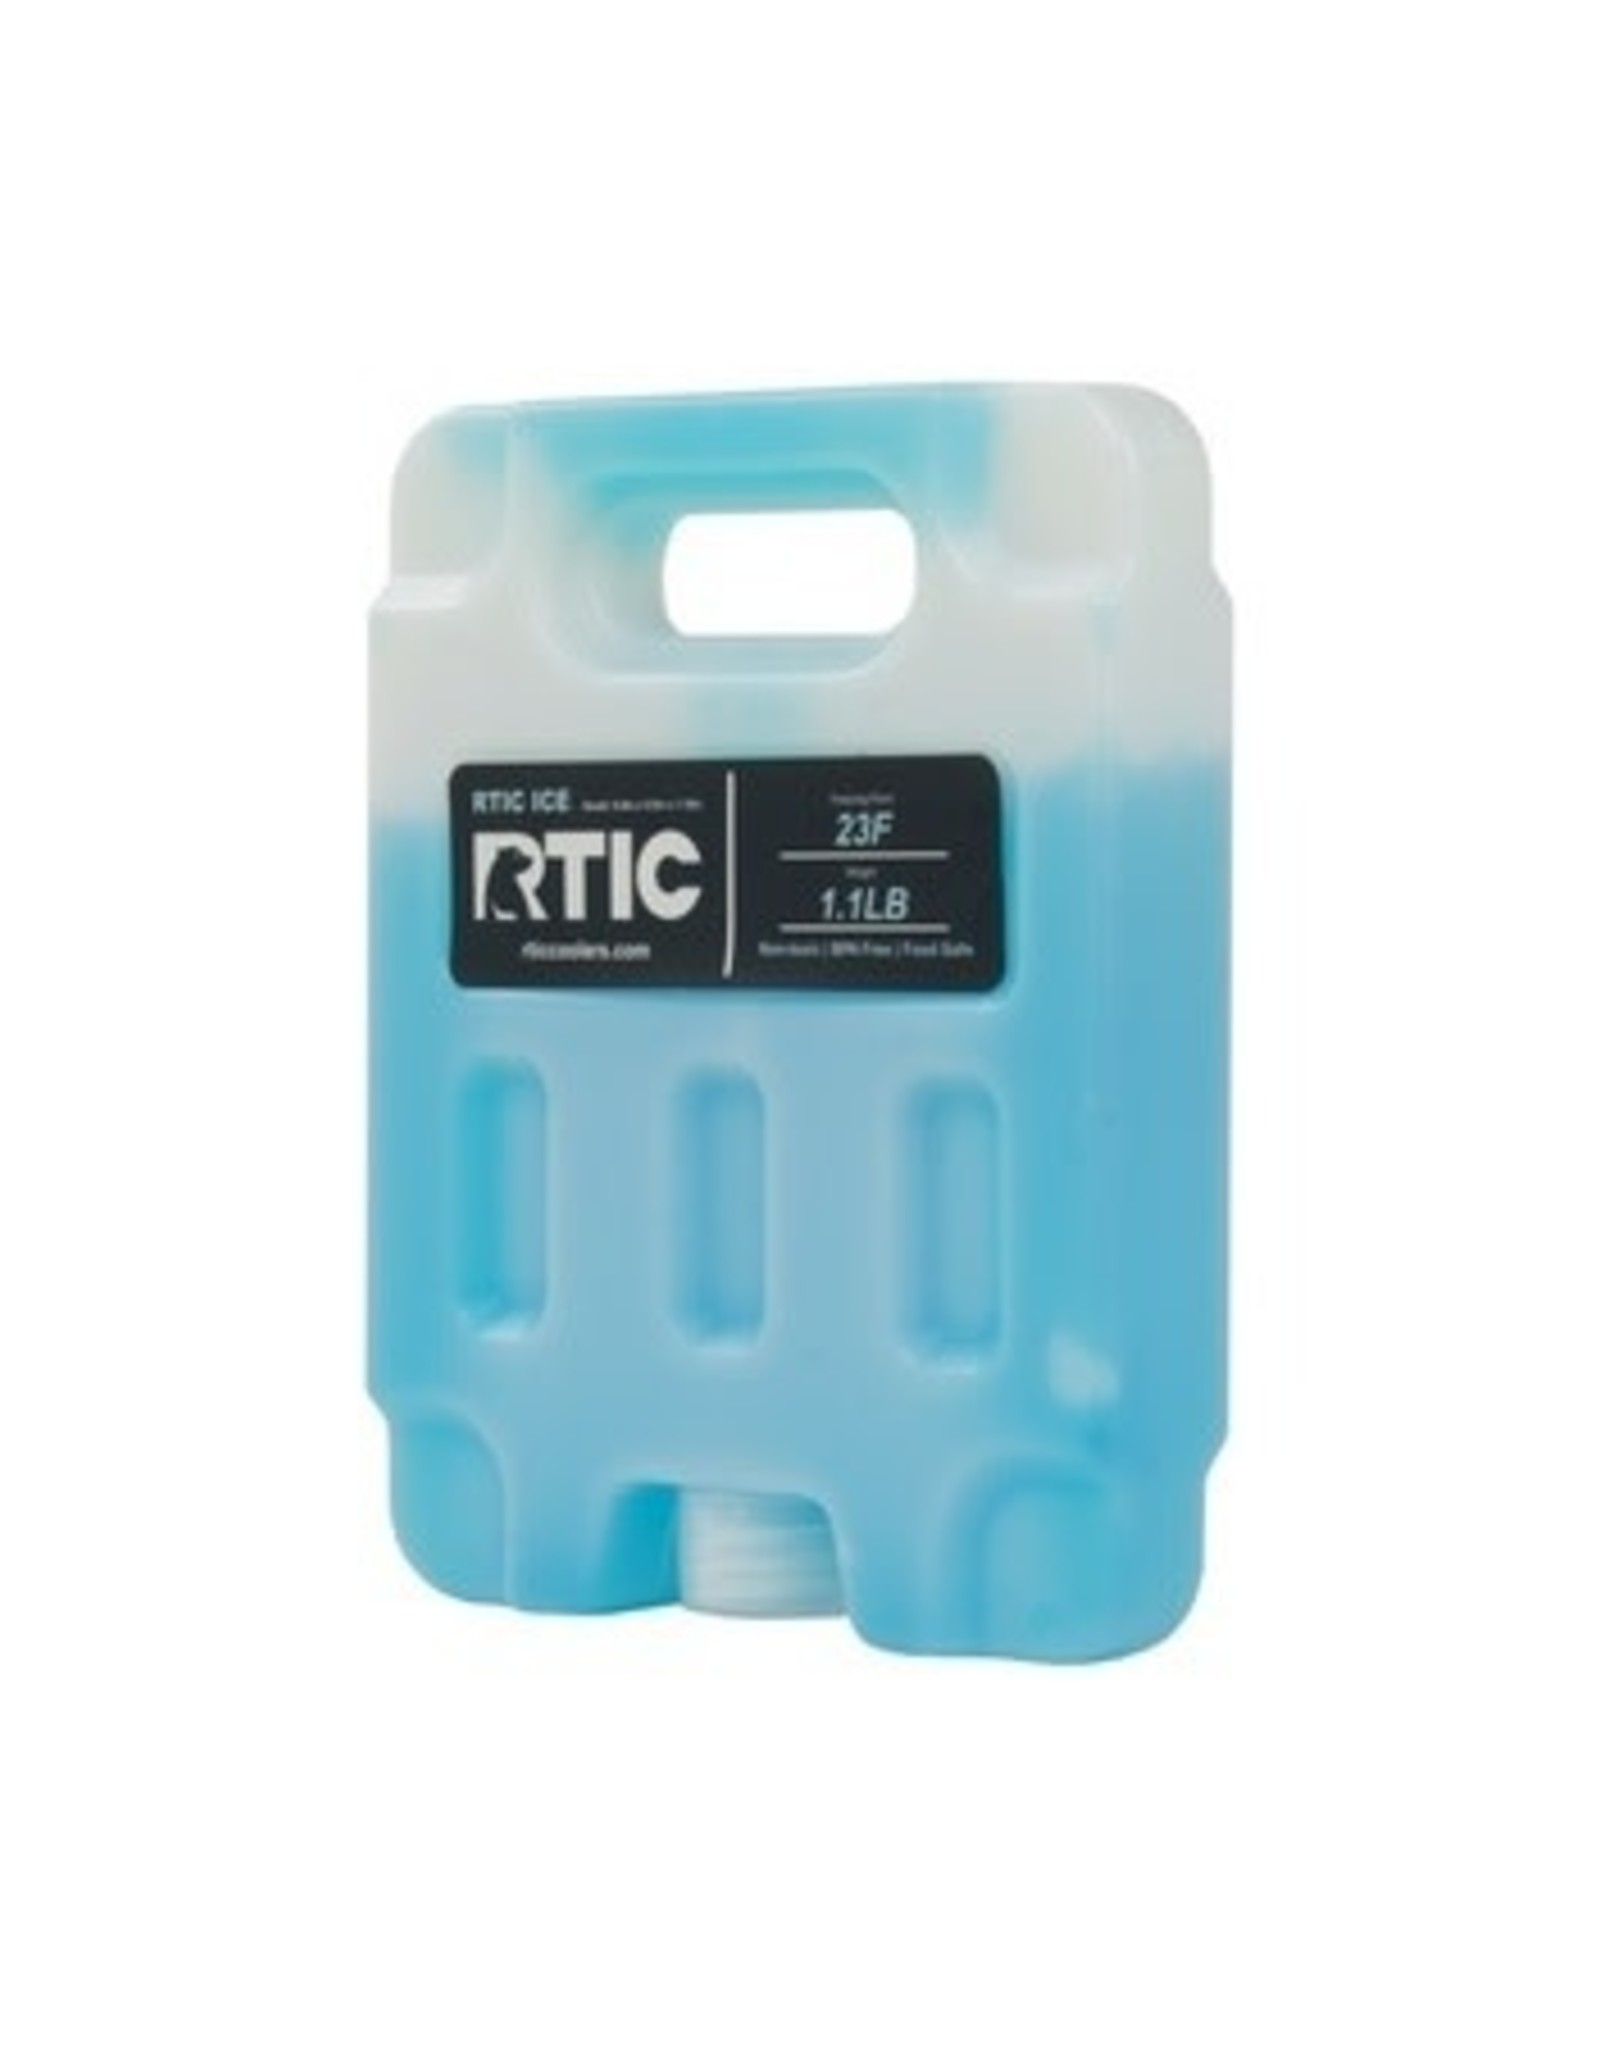 RTIC RTIC Ice - Small